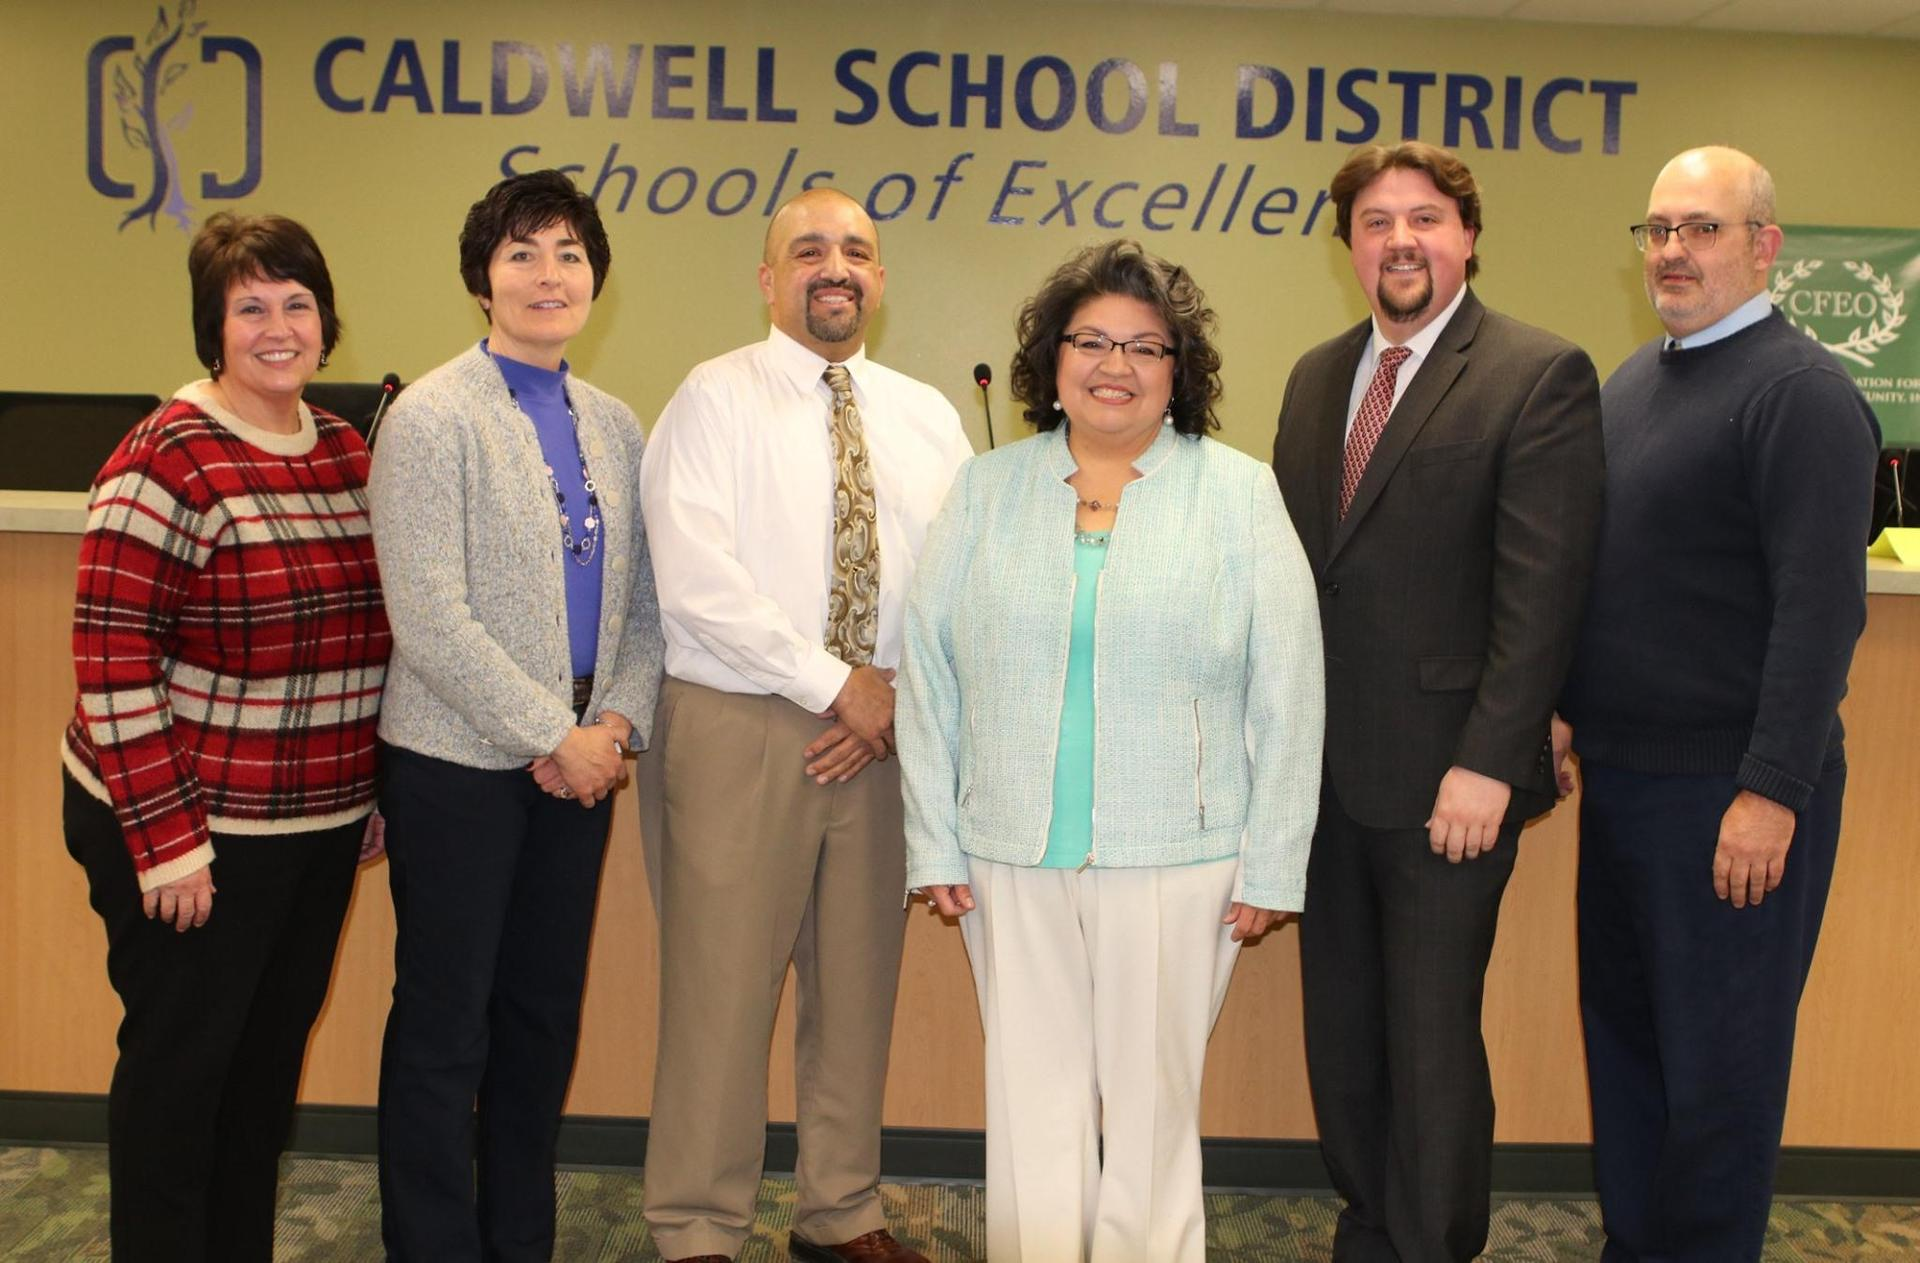 Trustee Marisela Pesina, center, was elected chairman, and Trustee Travis Manning, far right, was elected vice chairman.